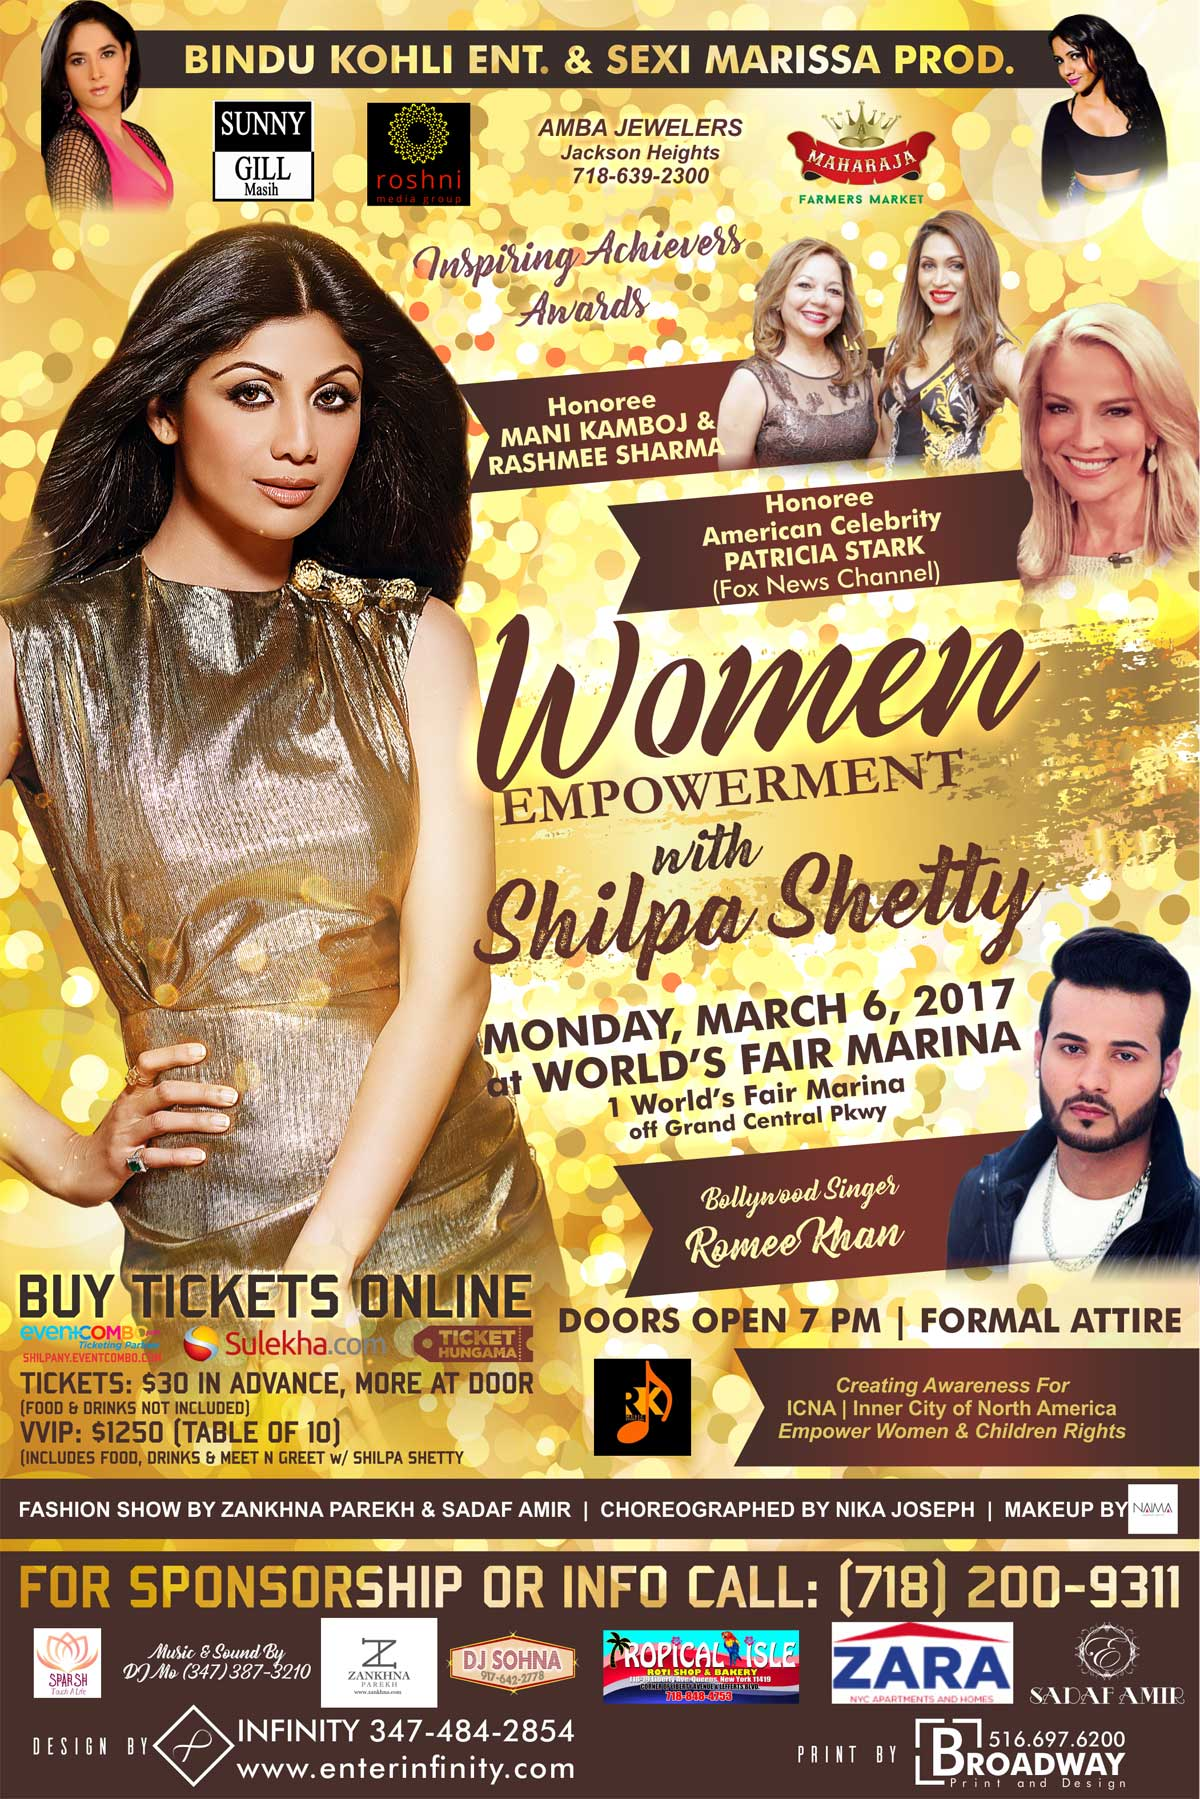 Women Empowerment with Shilpa Shetty in New York